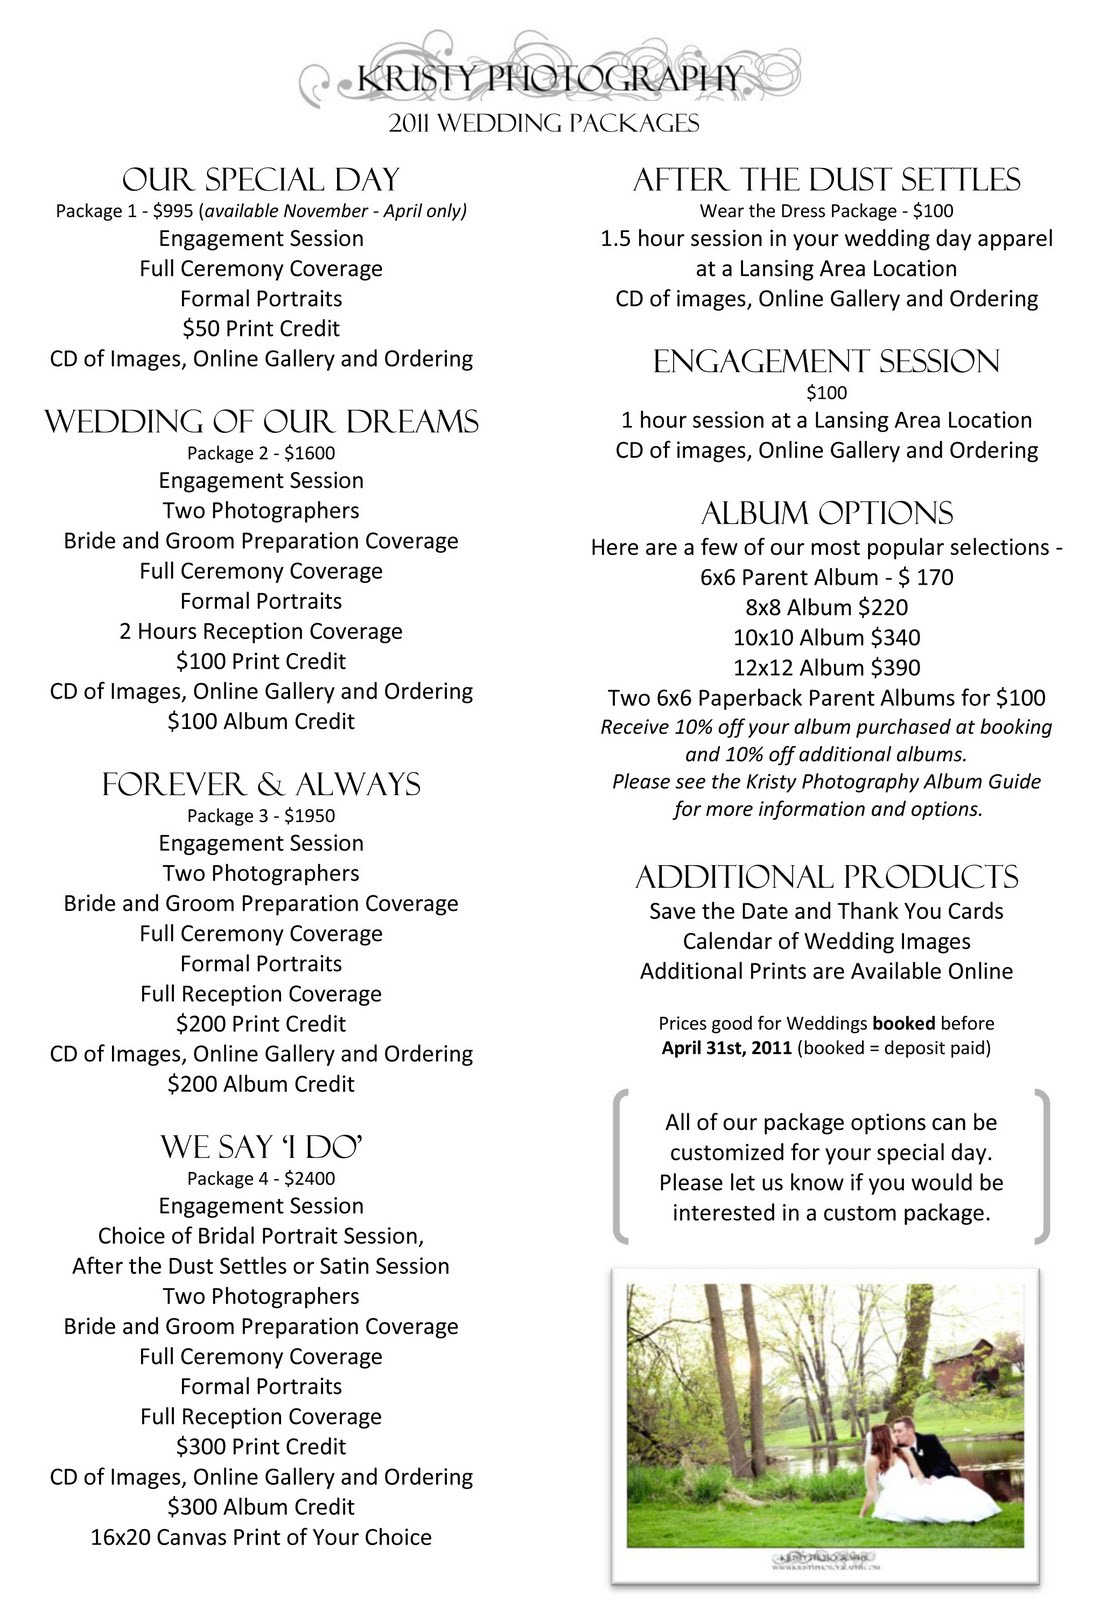 2011 Wedding Packages Are Now Available